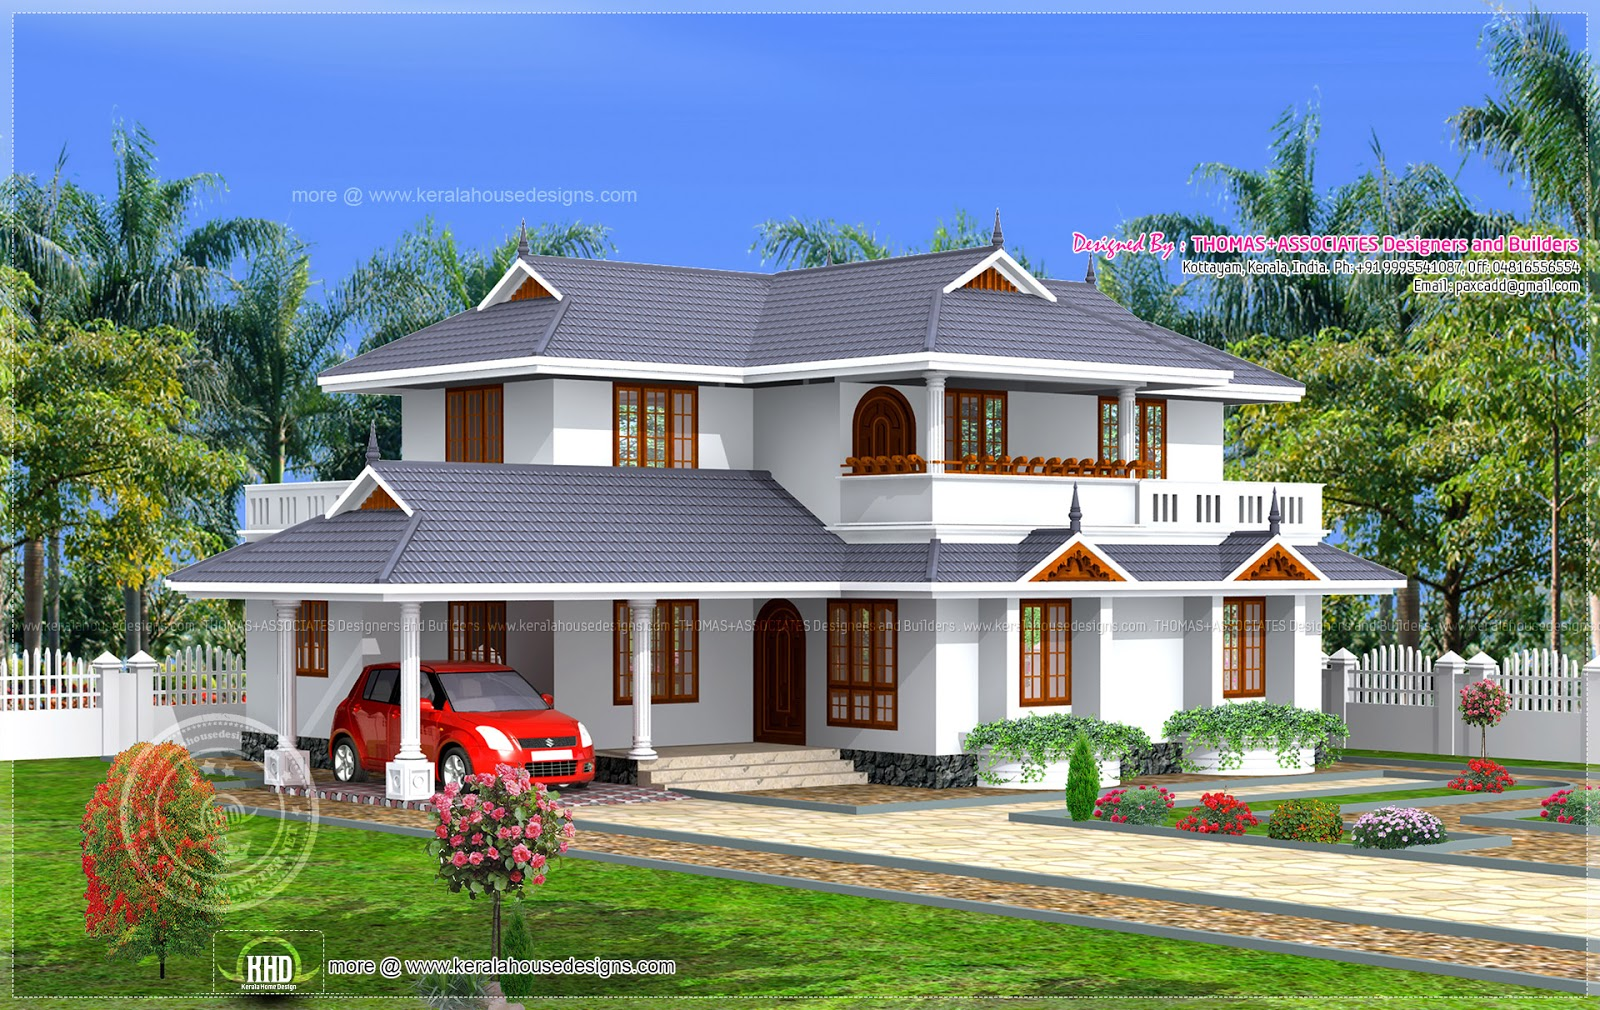 House plans and design house plans in kerala model for Homes models and plans